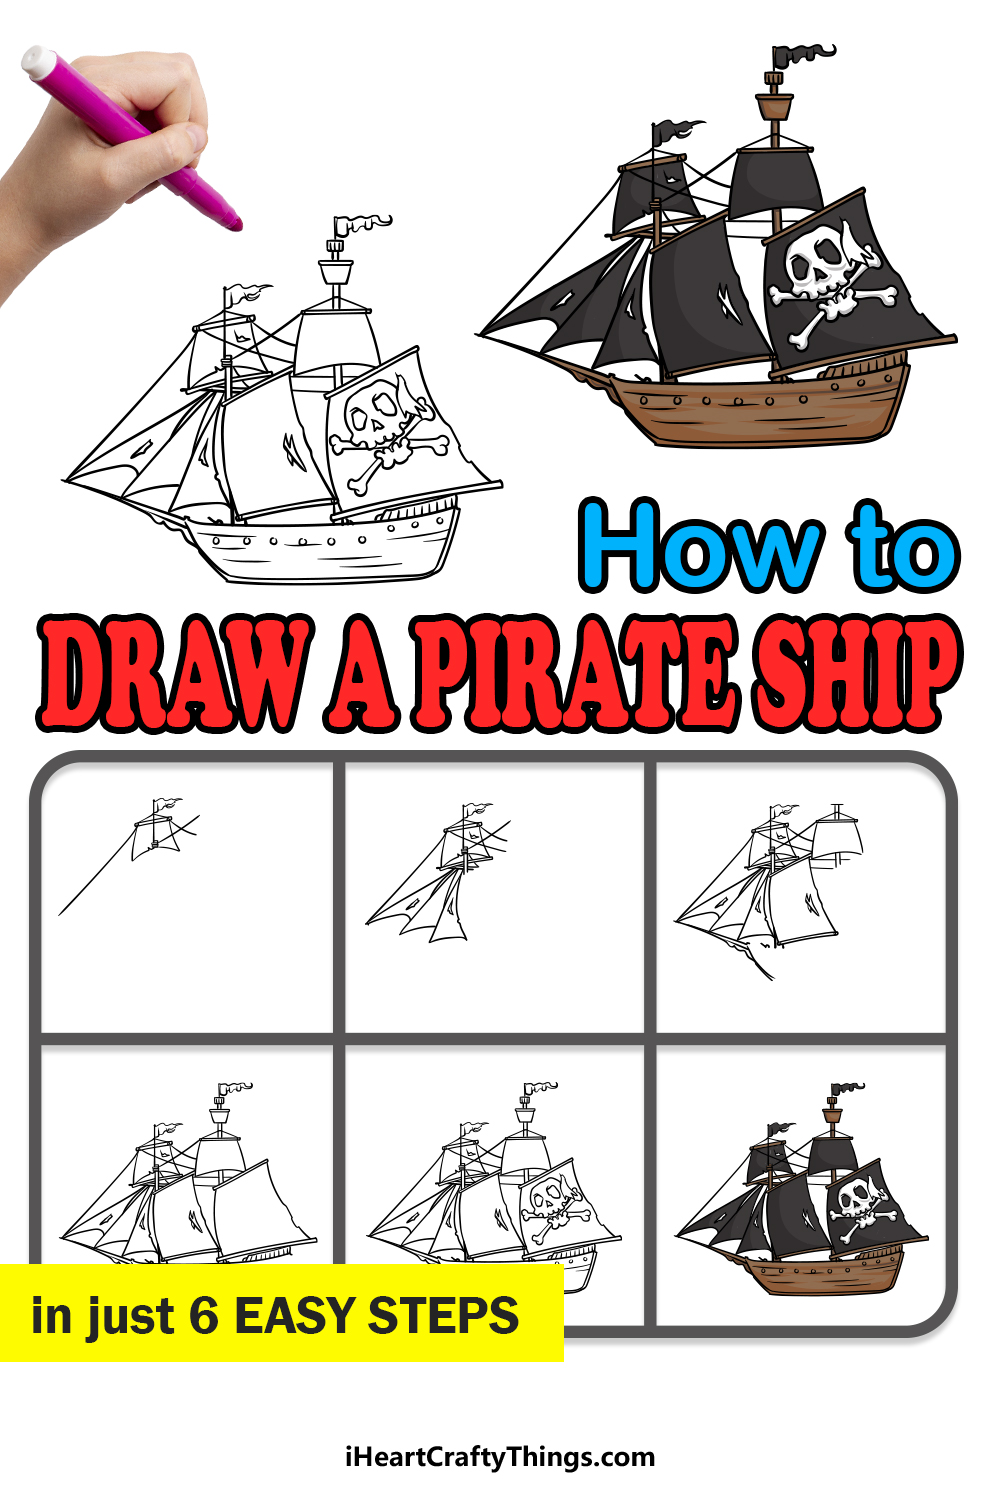 how to draw a pirate ship in 6 easy steps